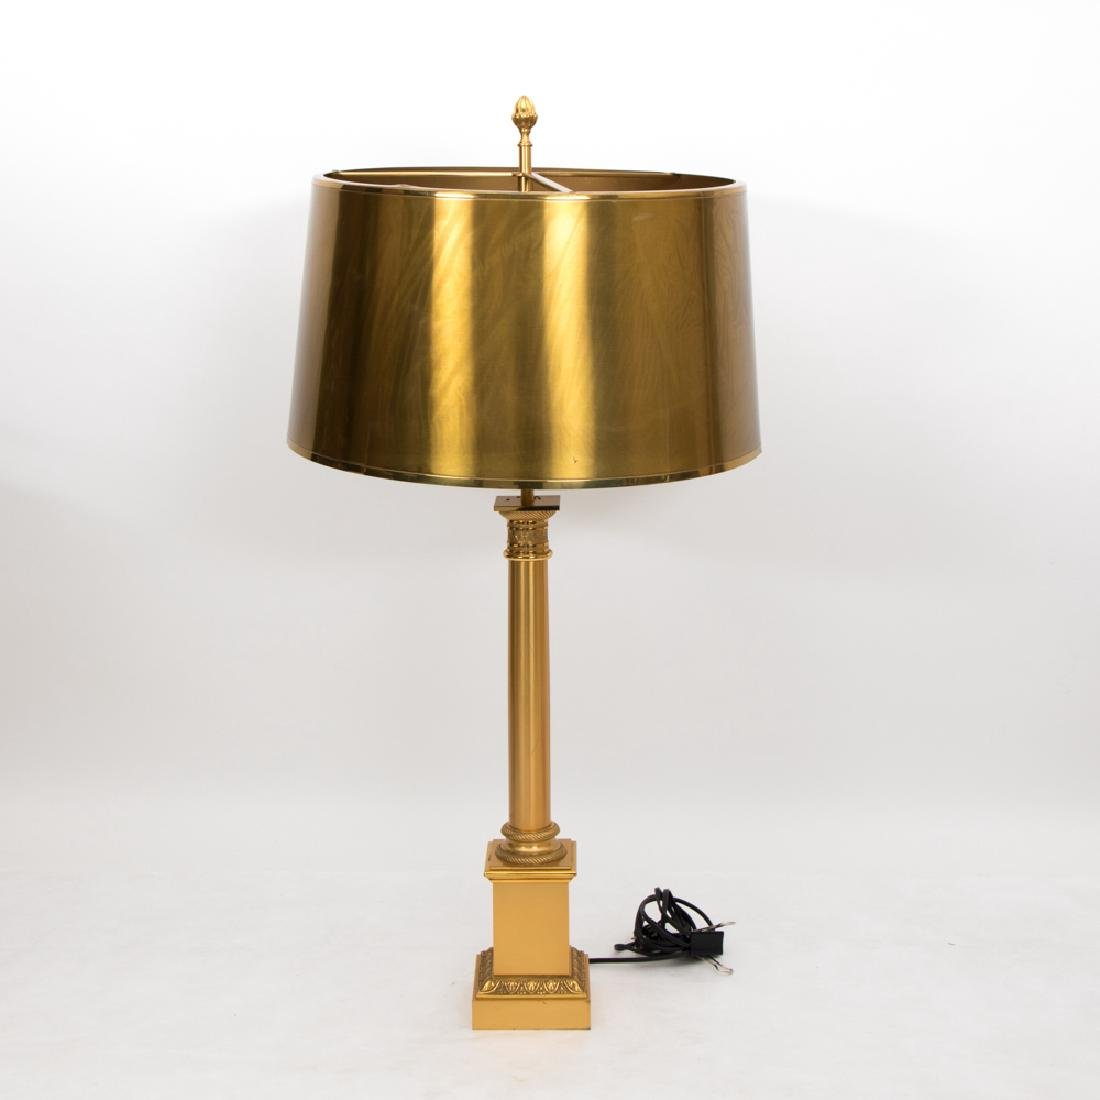 A Neoclassical Style Brass Column Form Table Lamp with